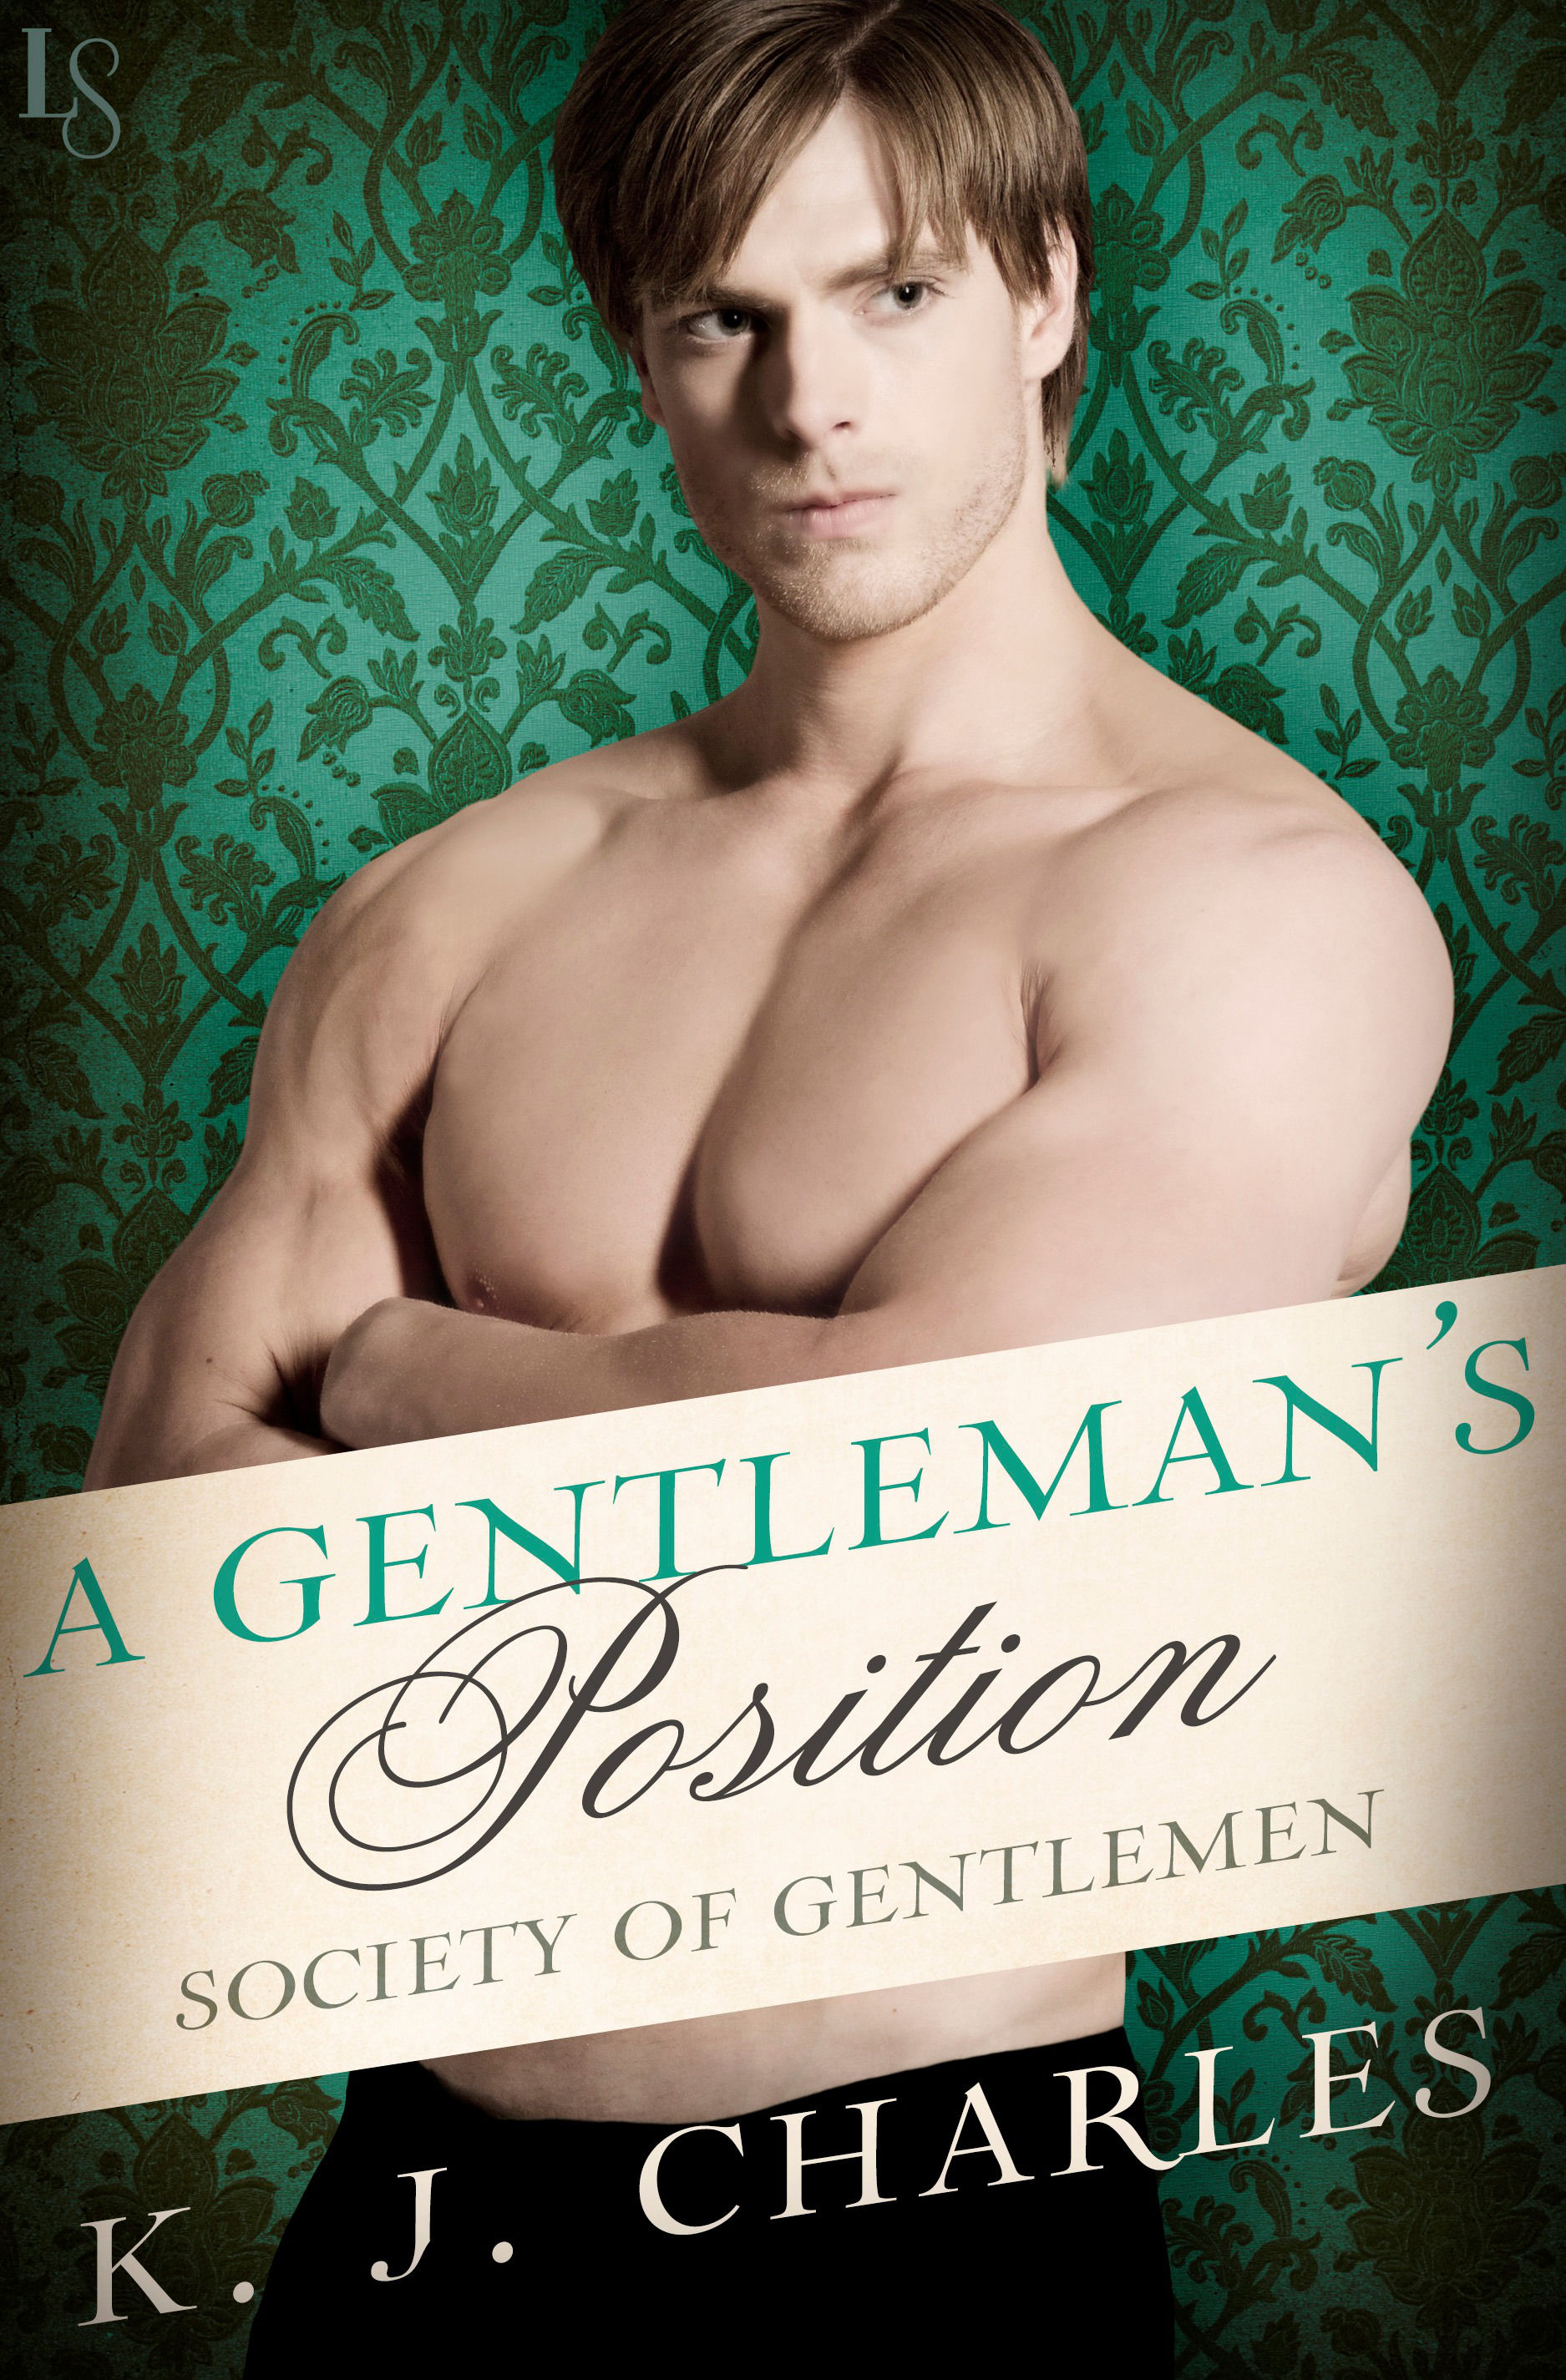 A Gentleman's Position Cover